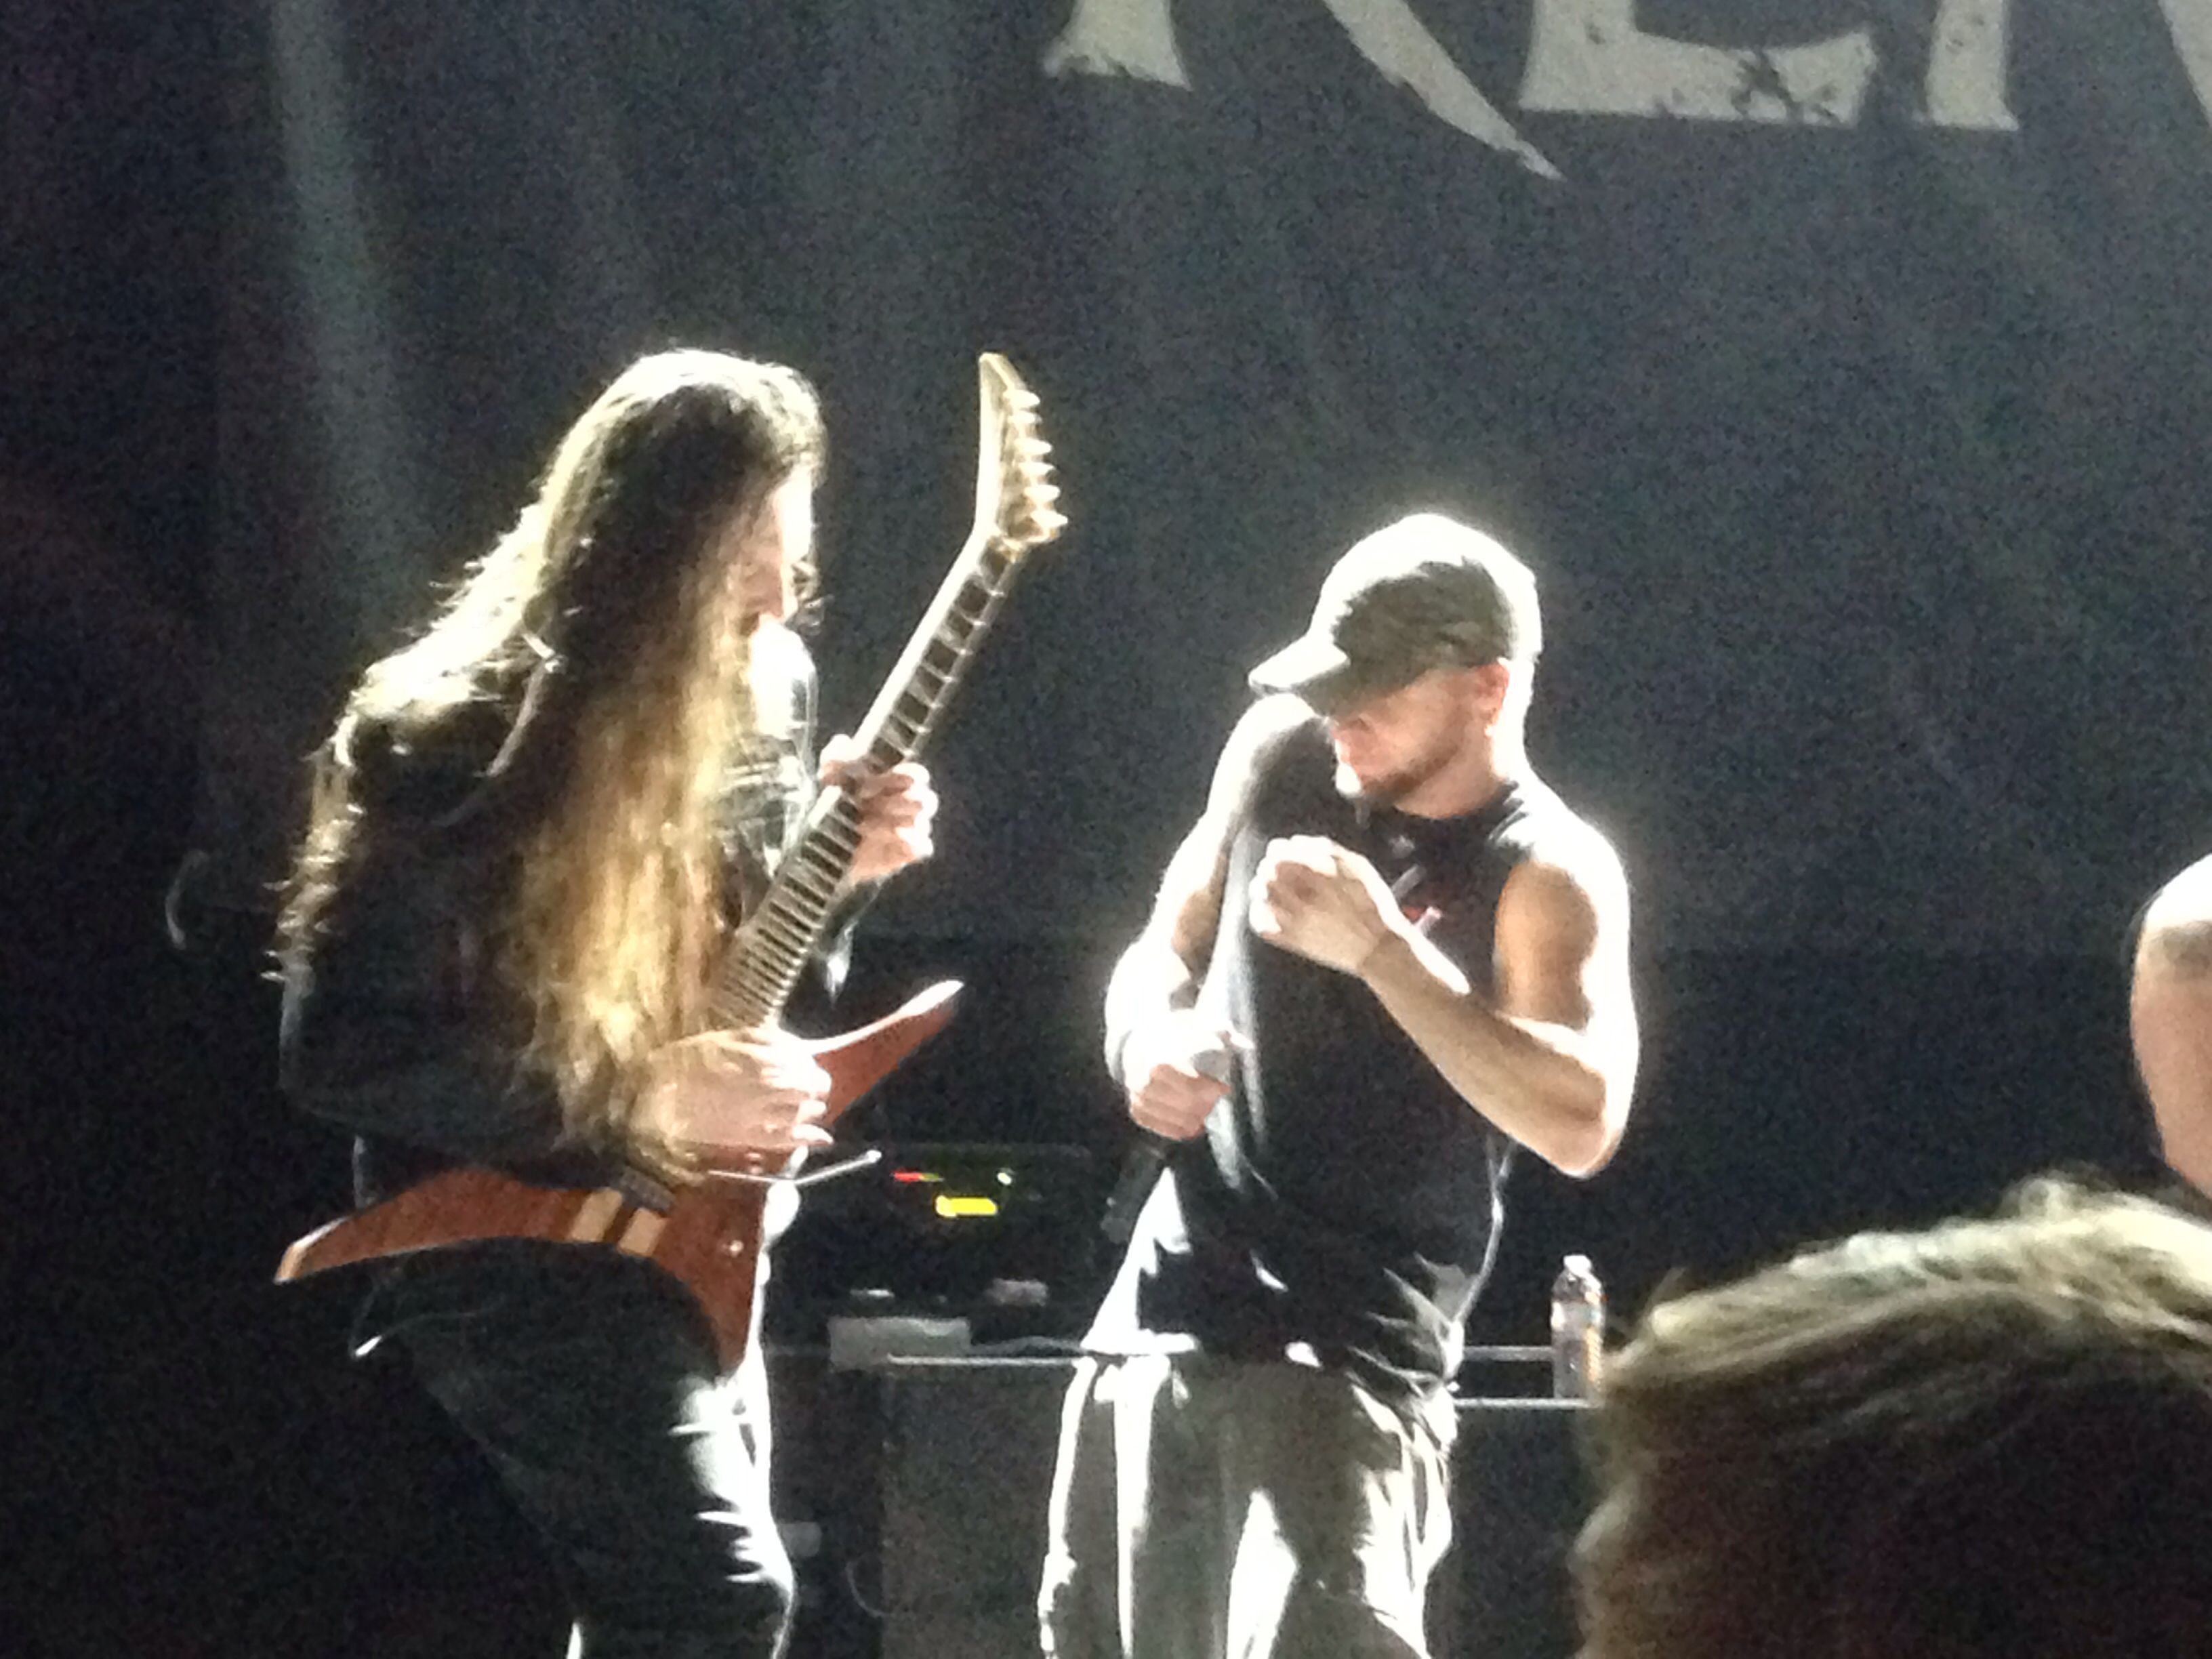 Phil Labonte and Oli Herbert from All That Remains - A Not So Silent Night